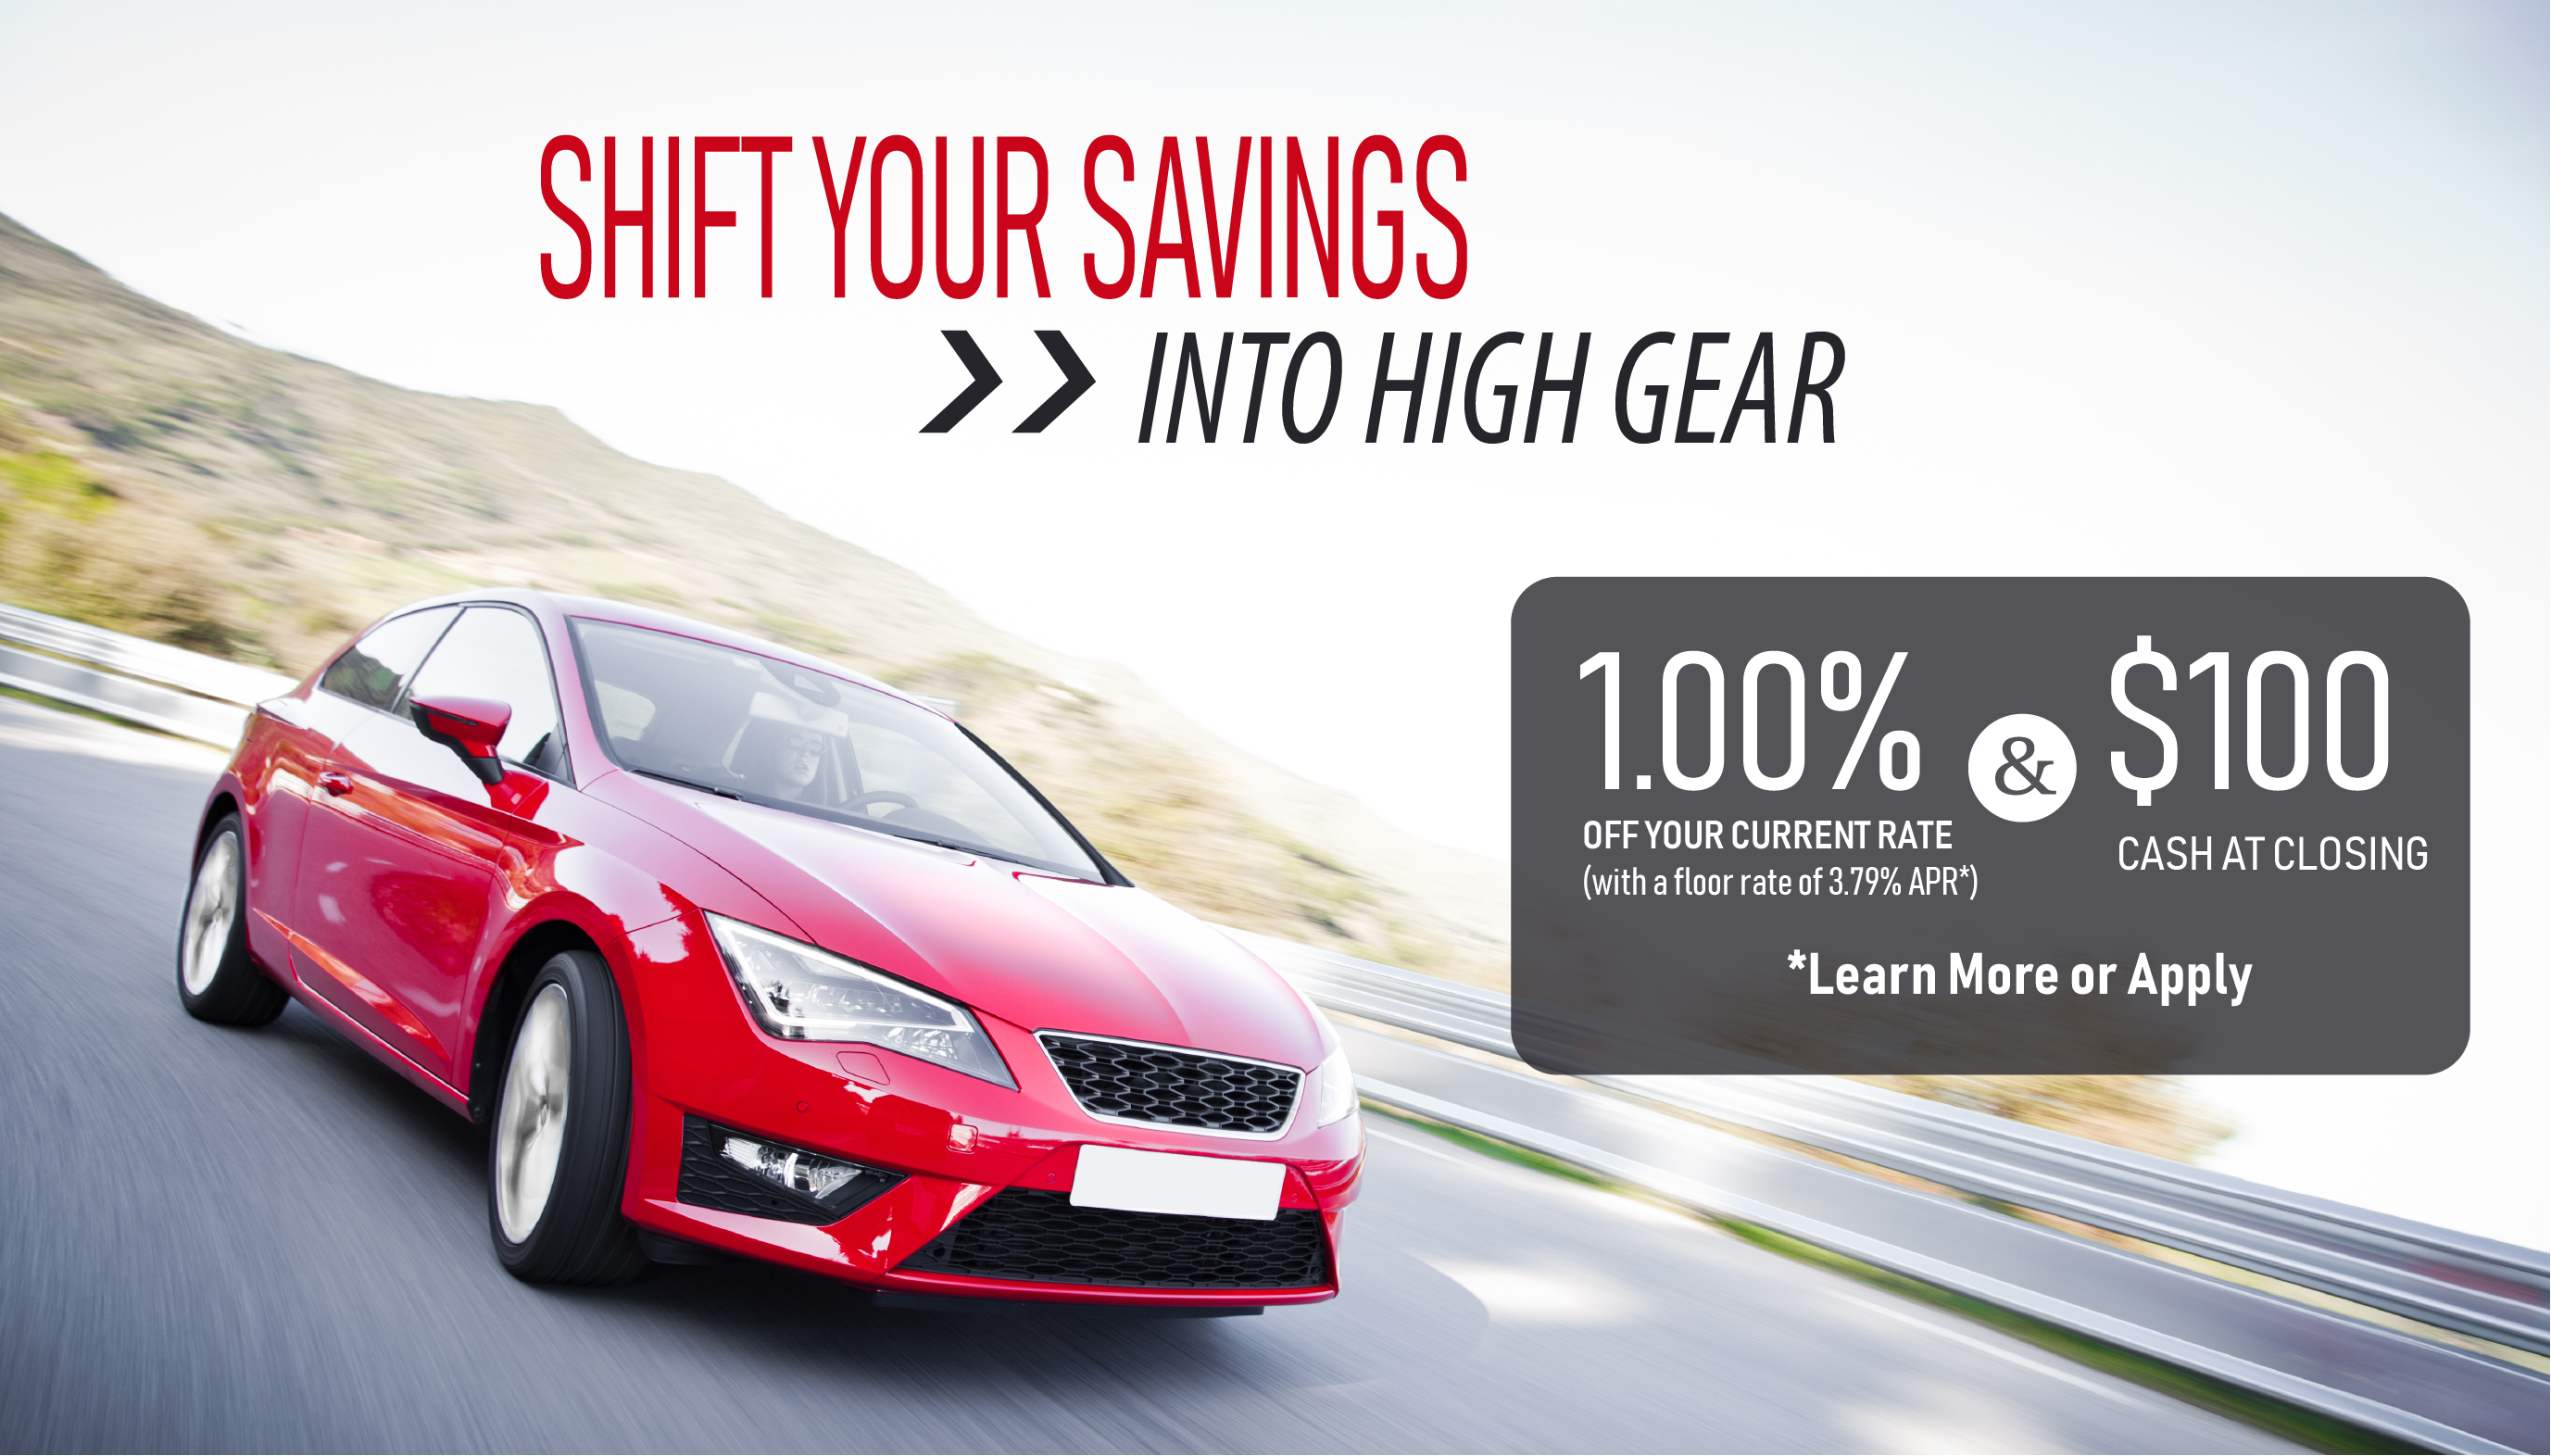 Refinance your vehicle at CHFCU and Shift your Savings into High Gear!